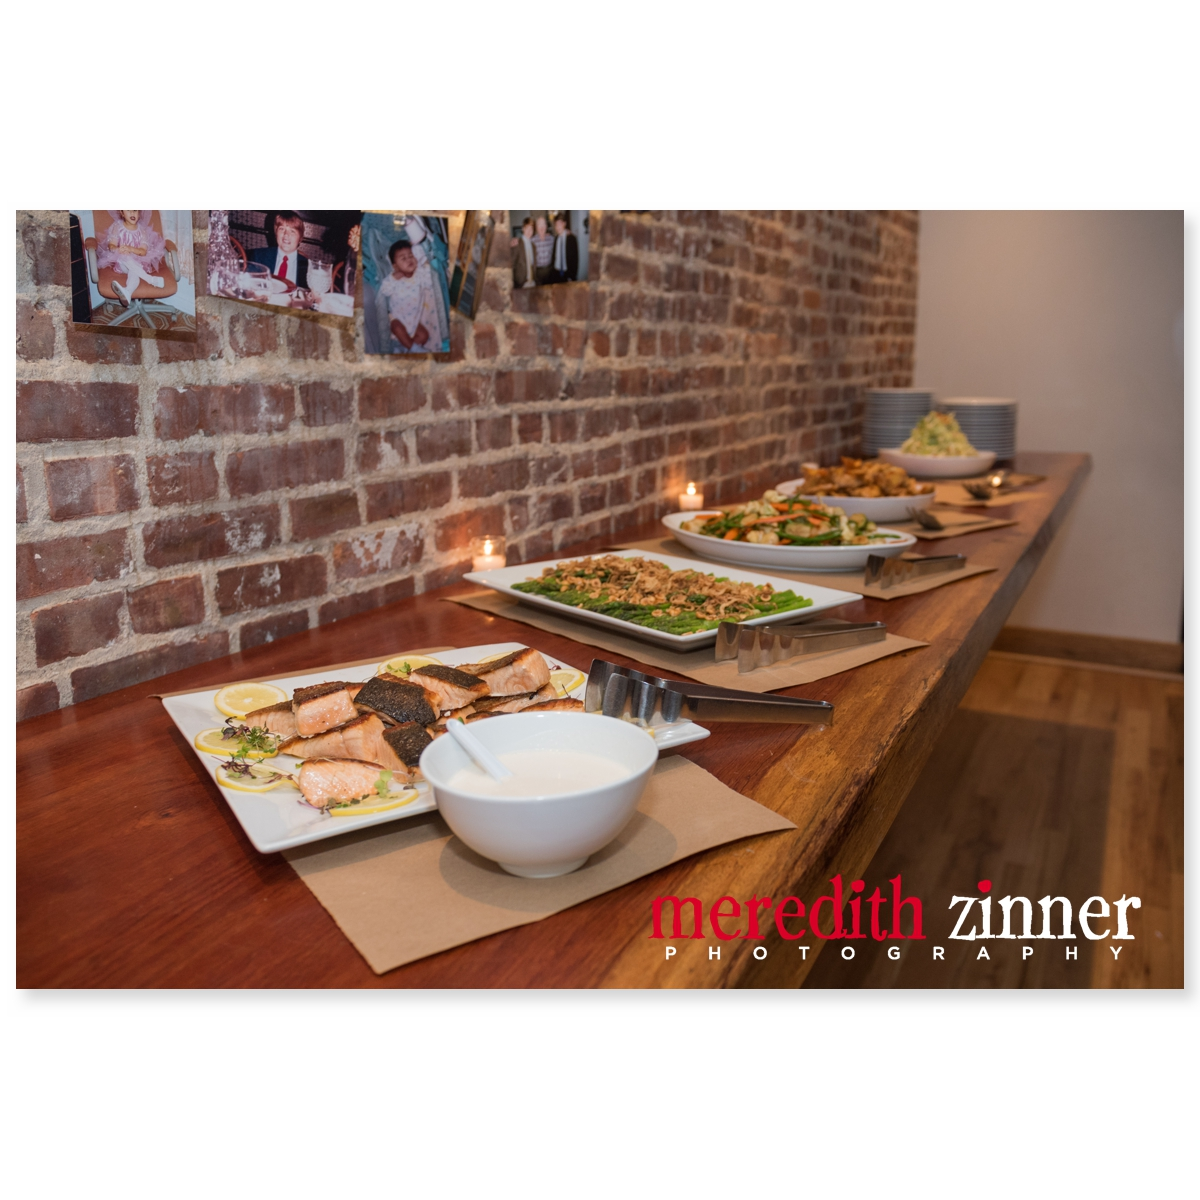 Meredith_Zinner_Photography_StilesCelebration_0155